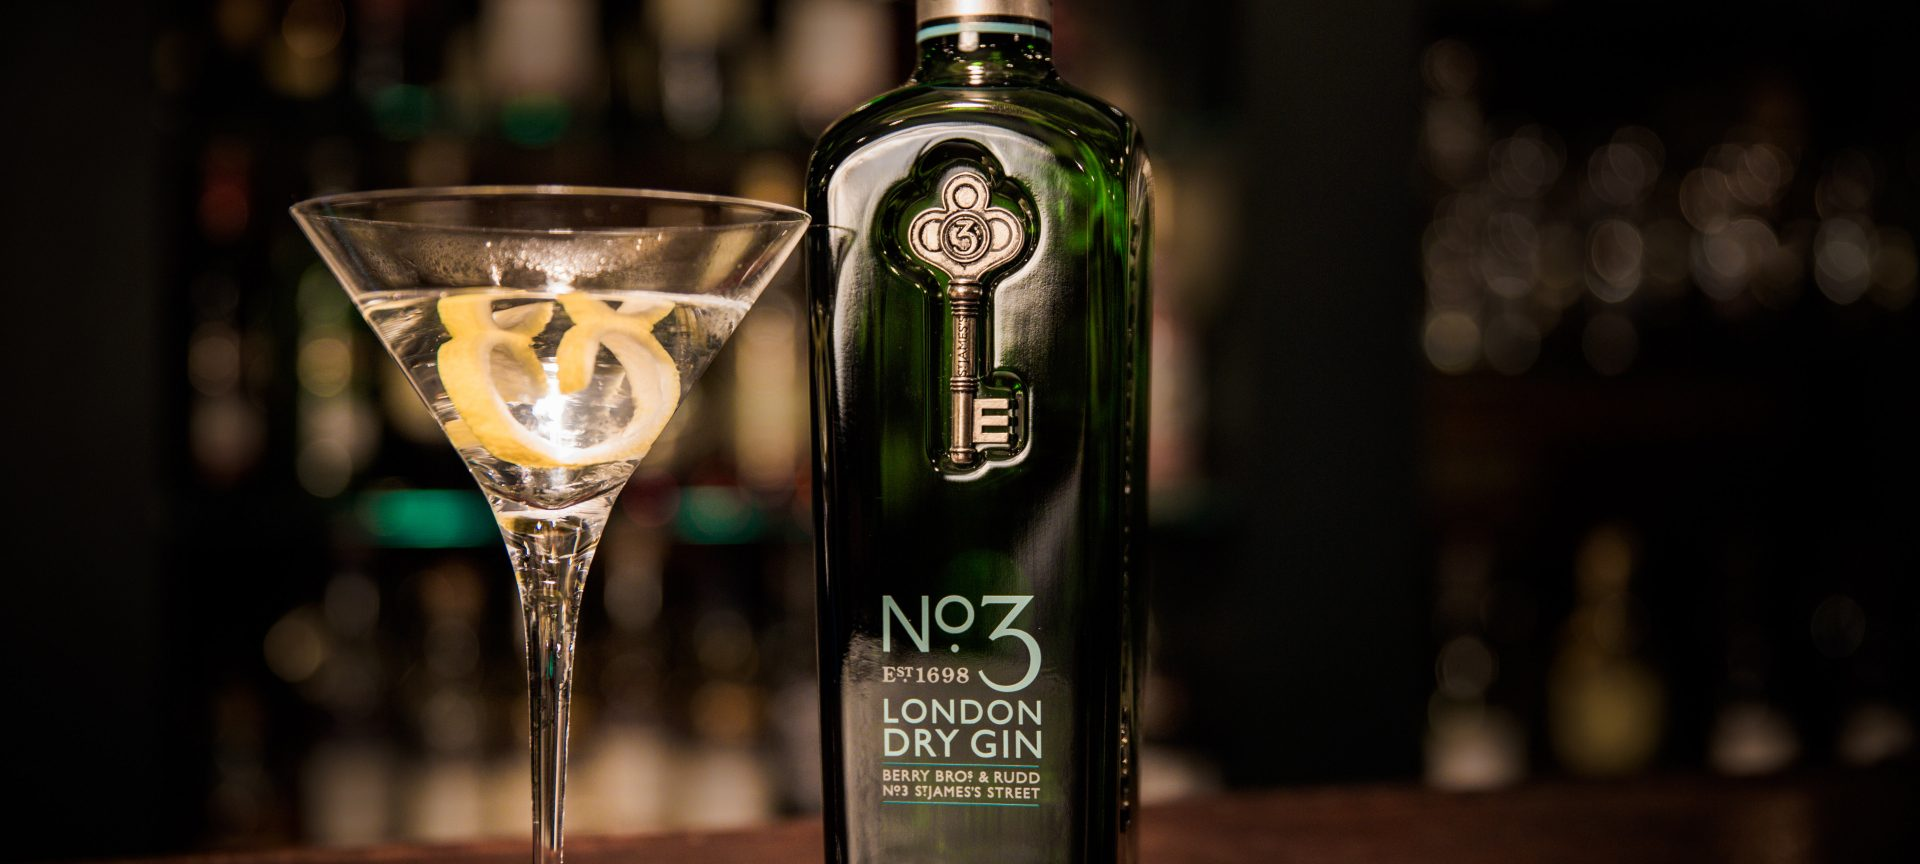 No.3 London Dry Gin best distilled in the world 2019